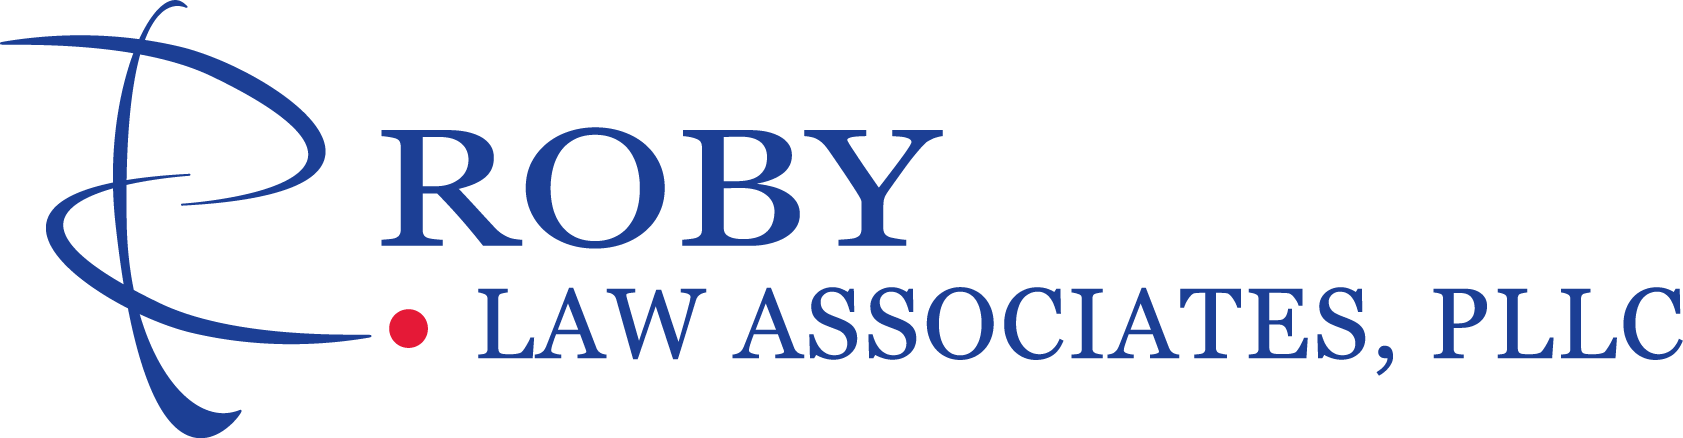 roby-law-associates.png